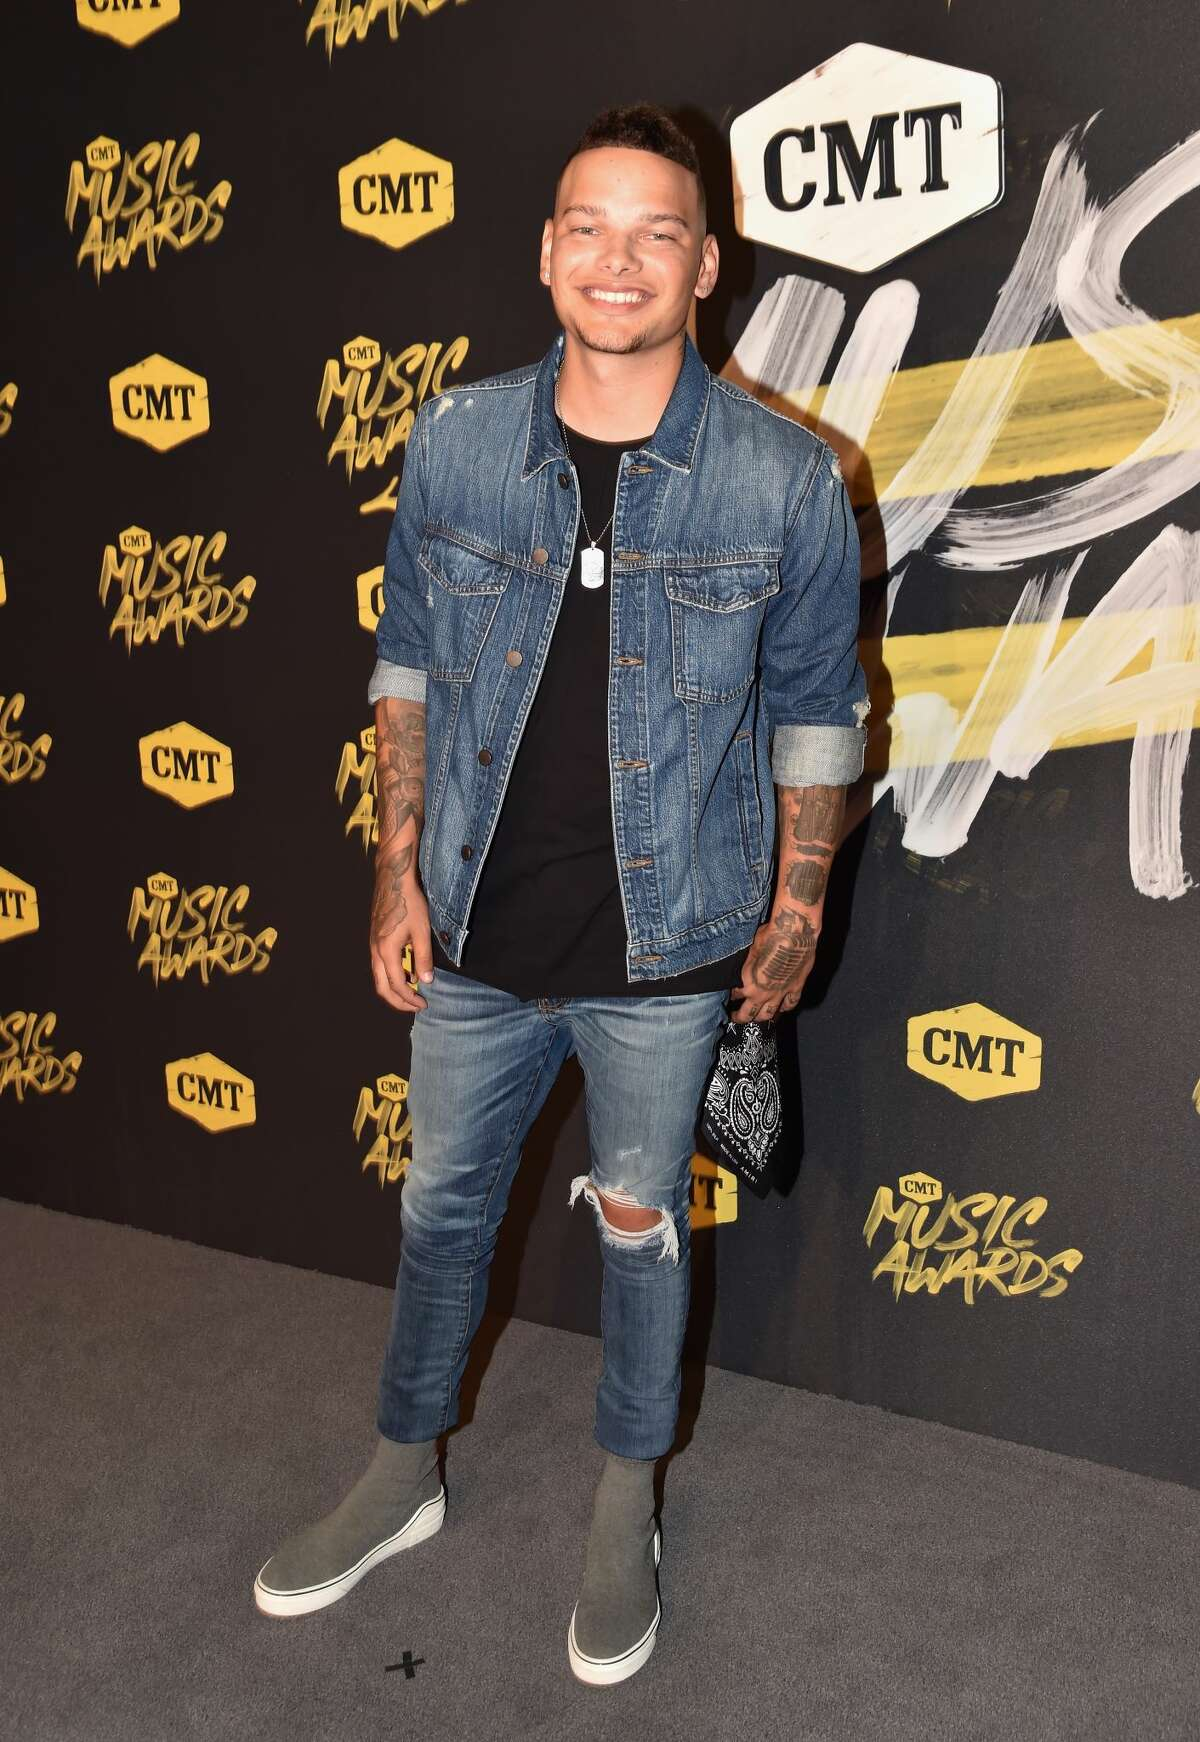 Worst: Kane Brown, those capris look like they're from the Limited Too.